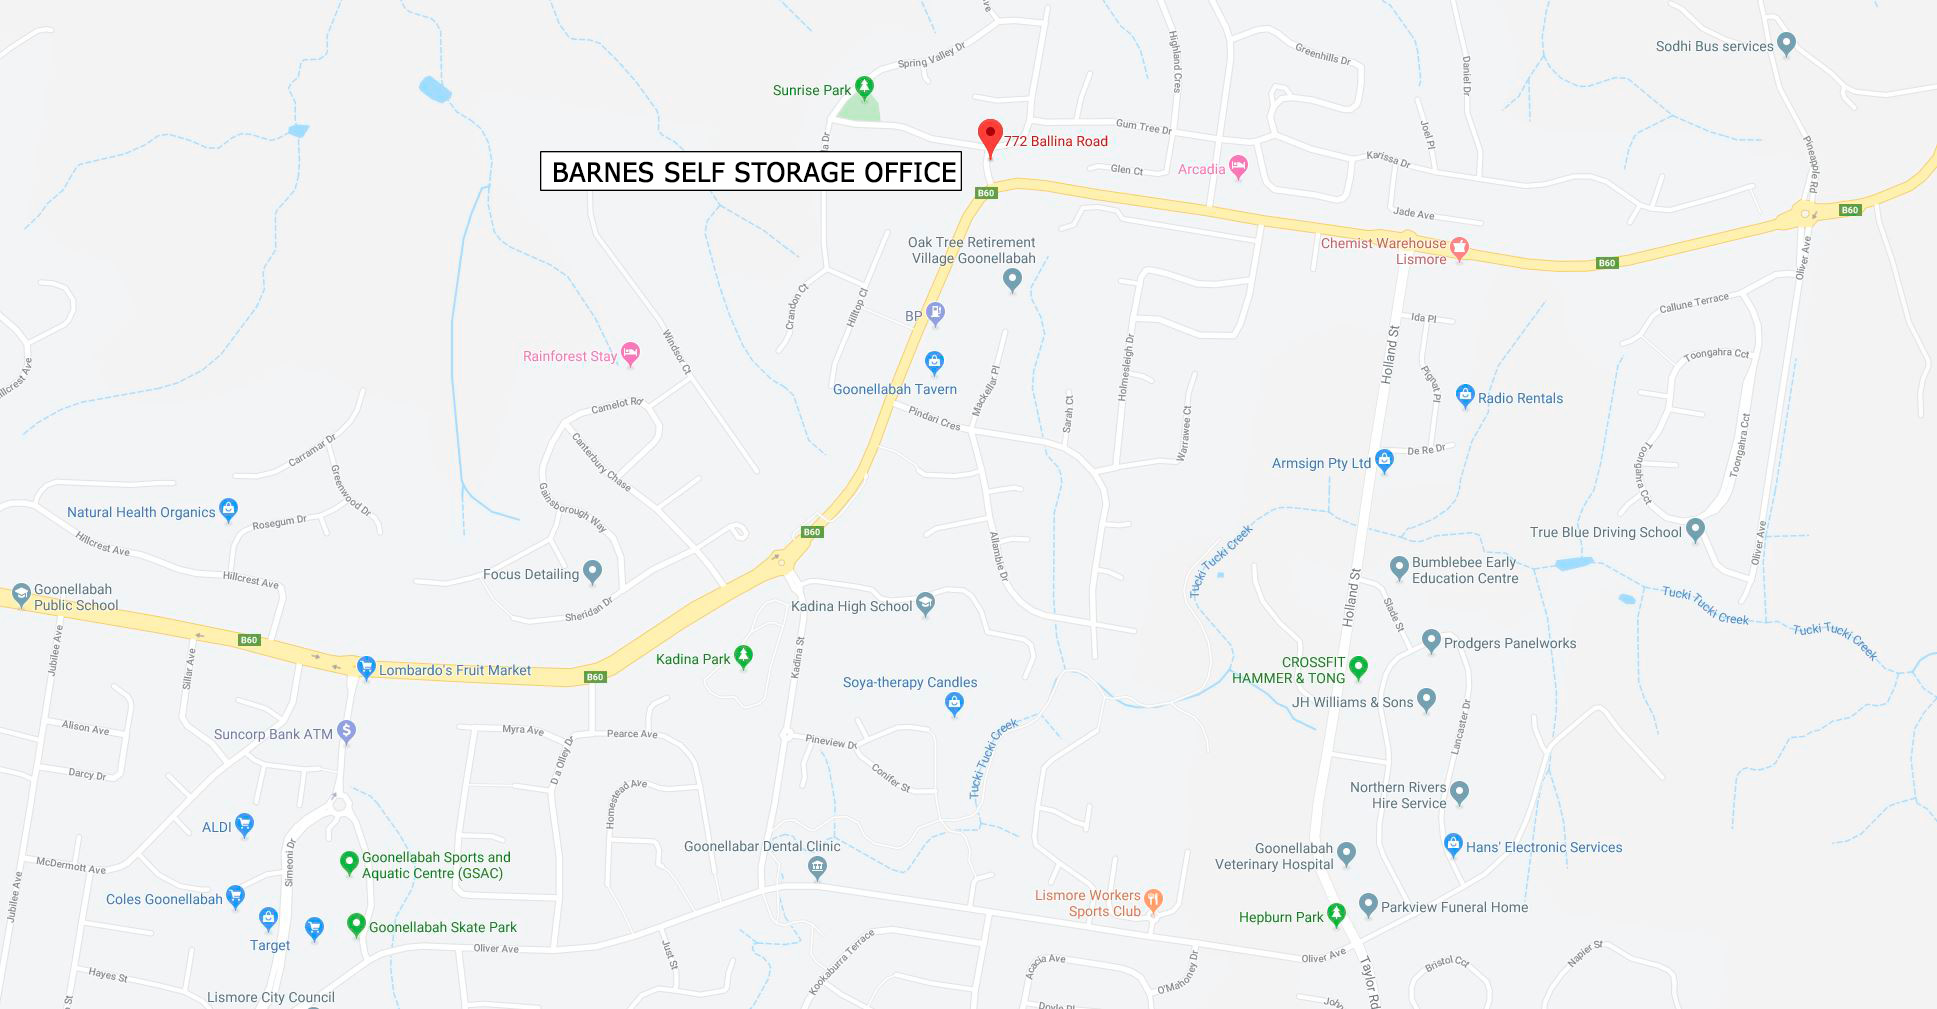 Barnes Self Storage Office NSW - Location Map